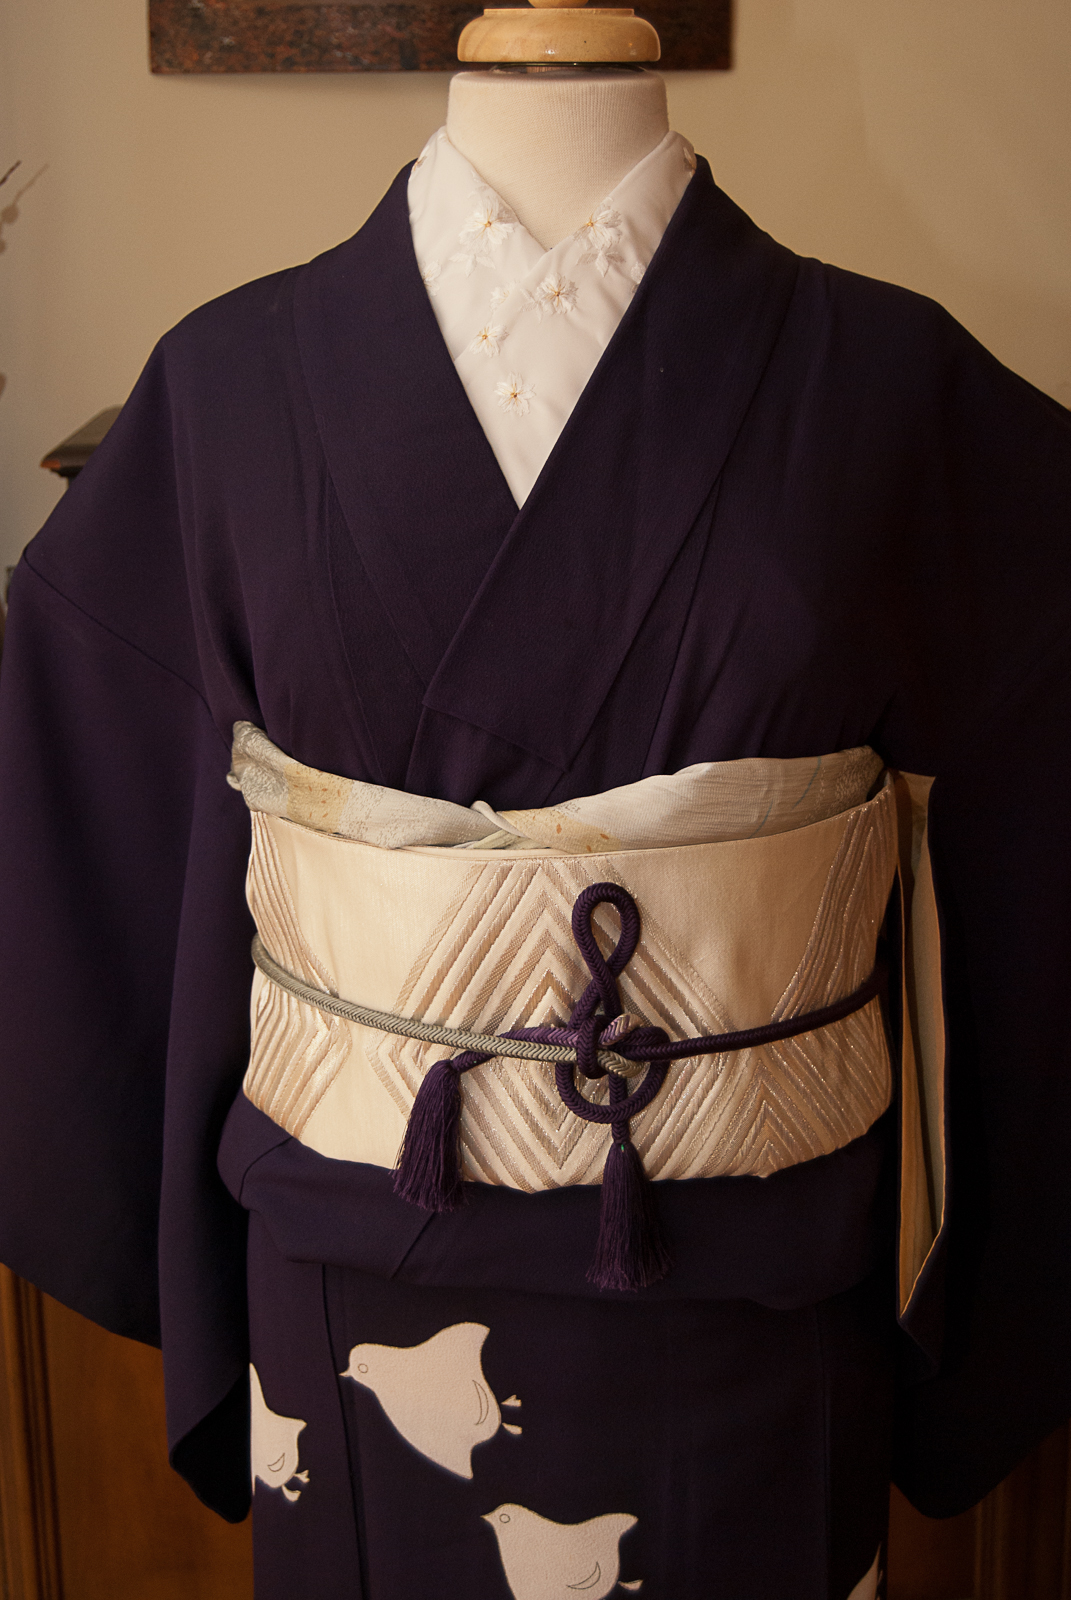 516c5abc834 ... bridging the gap between traditional and modern. The obijime knot and  the kimono really needed to be the focus here so I kept the obi and  accessories ...